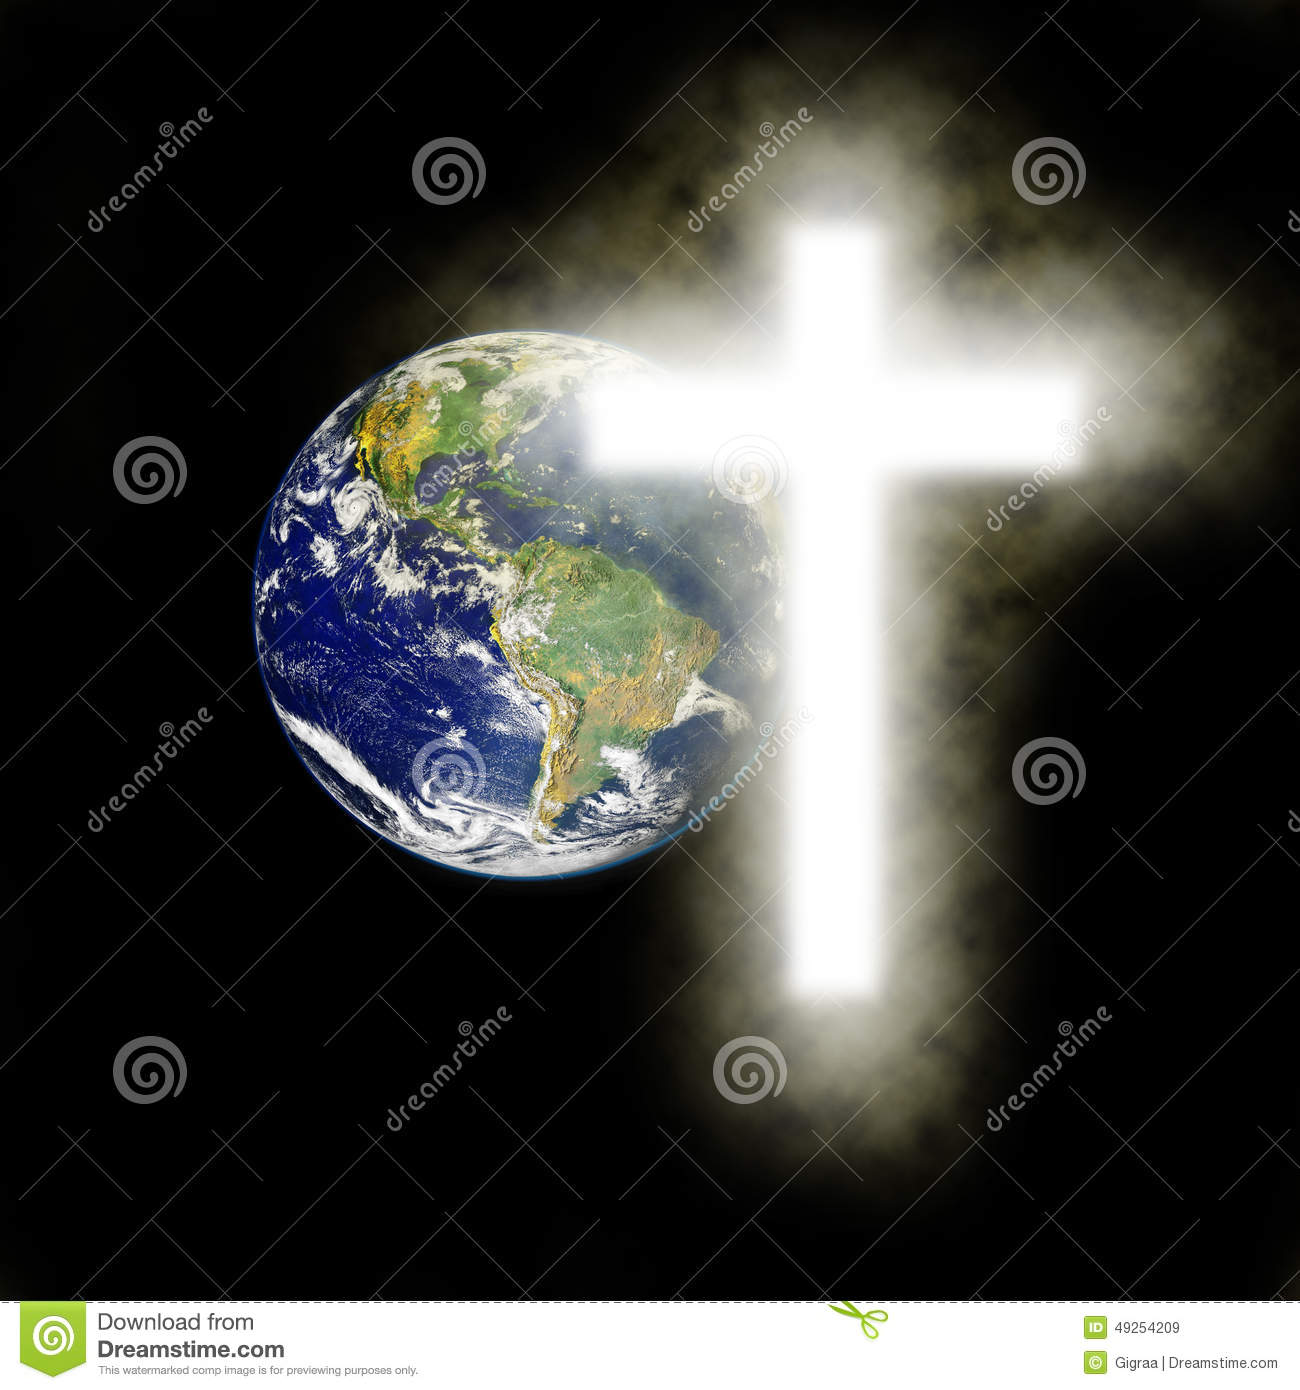 Religious Life of Planet Earth